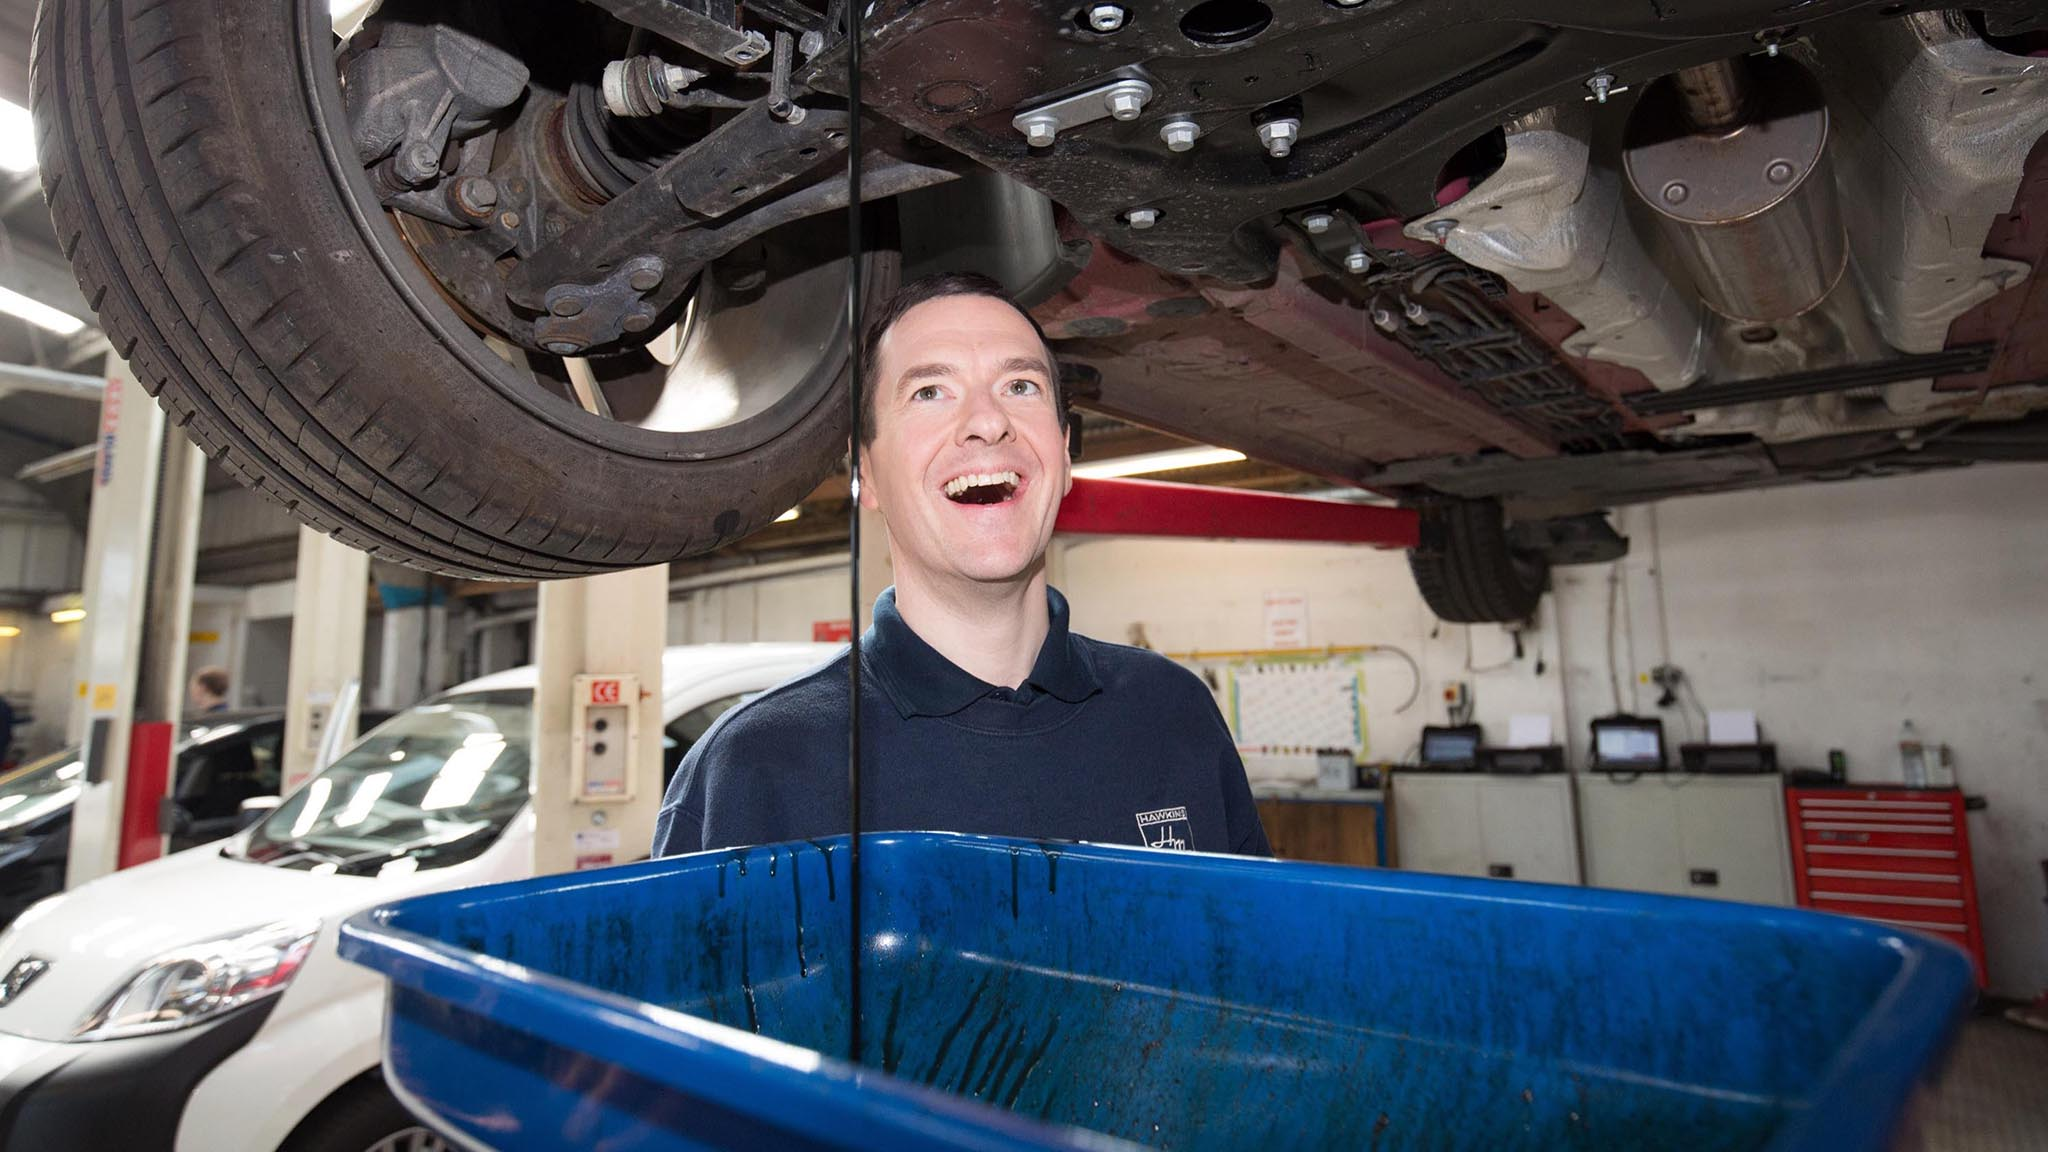 George Osborne On The Conservative Party Election Trail In The South West   ***BESTPIX***